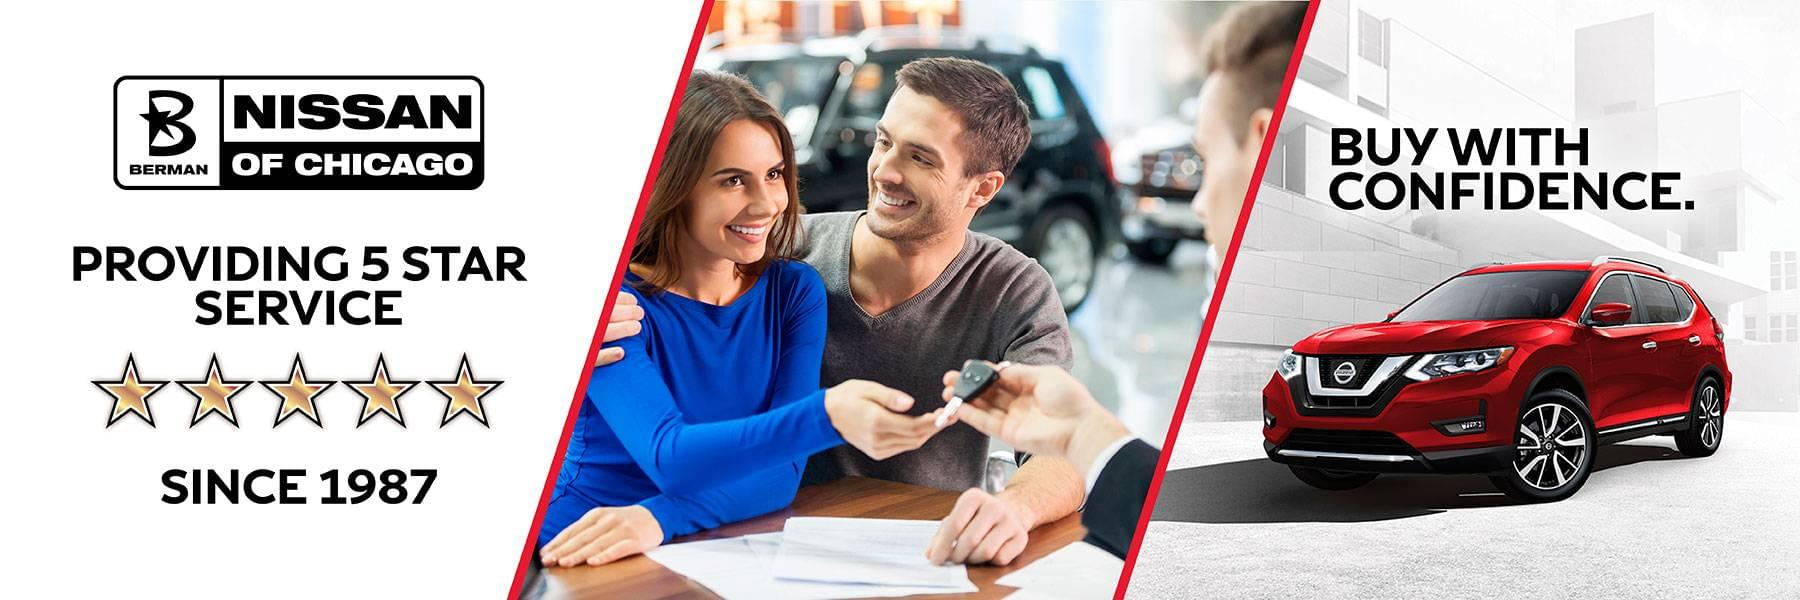 Buy and Service With Confidence at Berman Nissan of Chicago